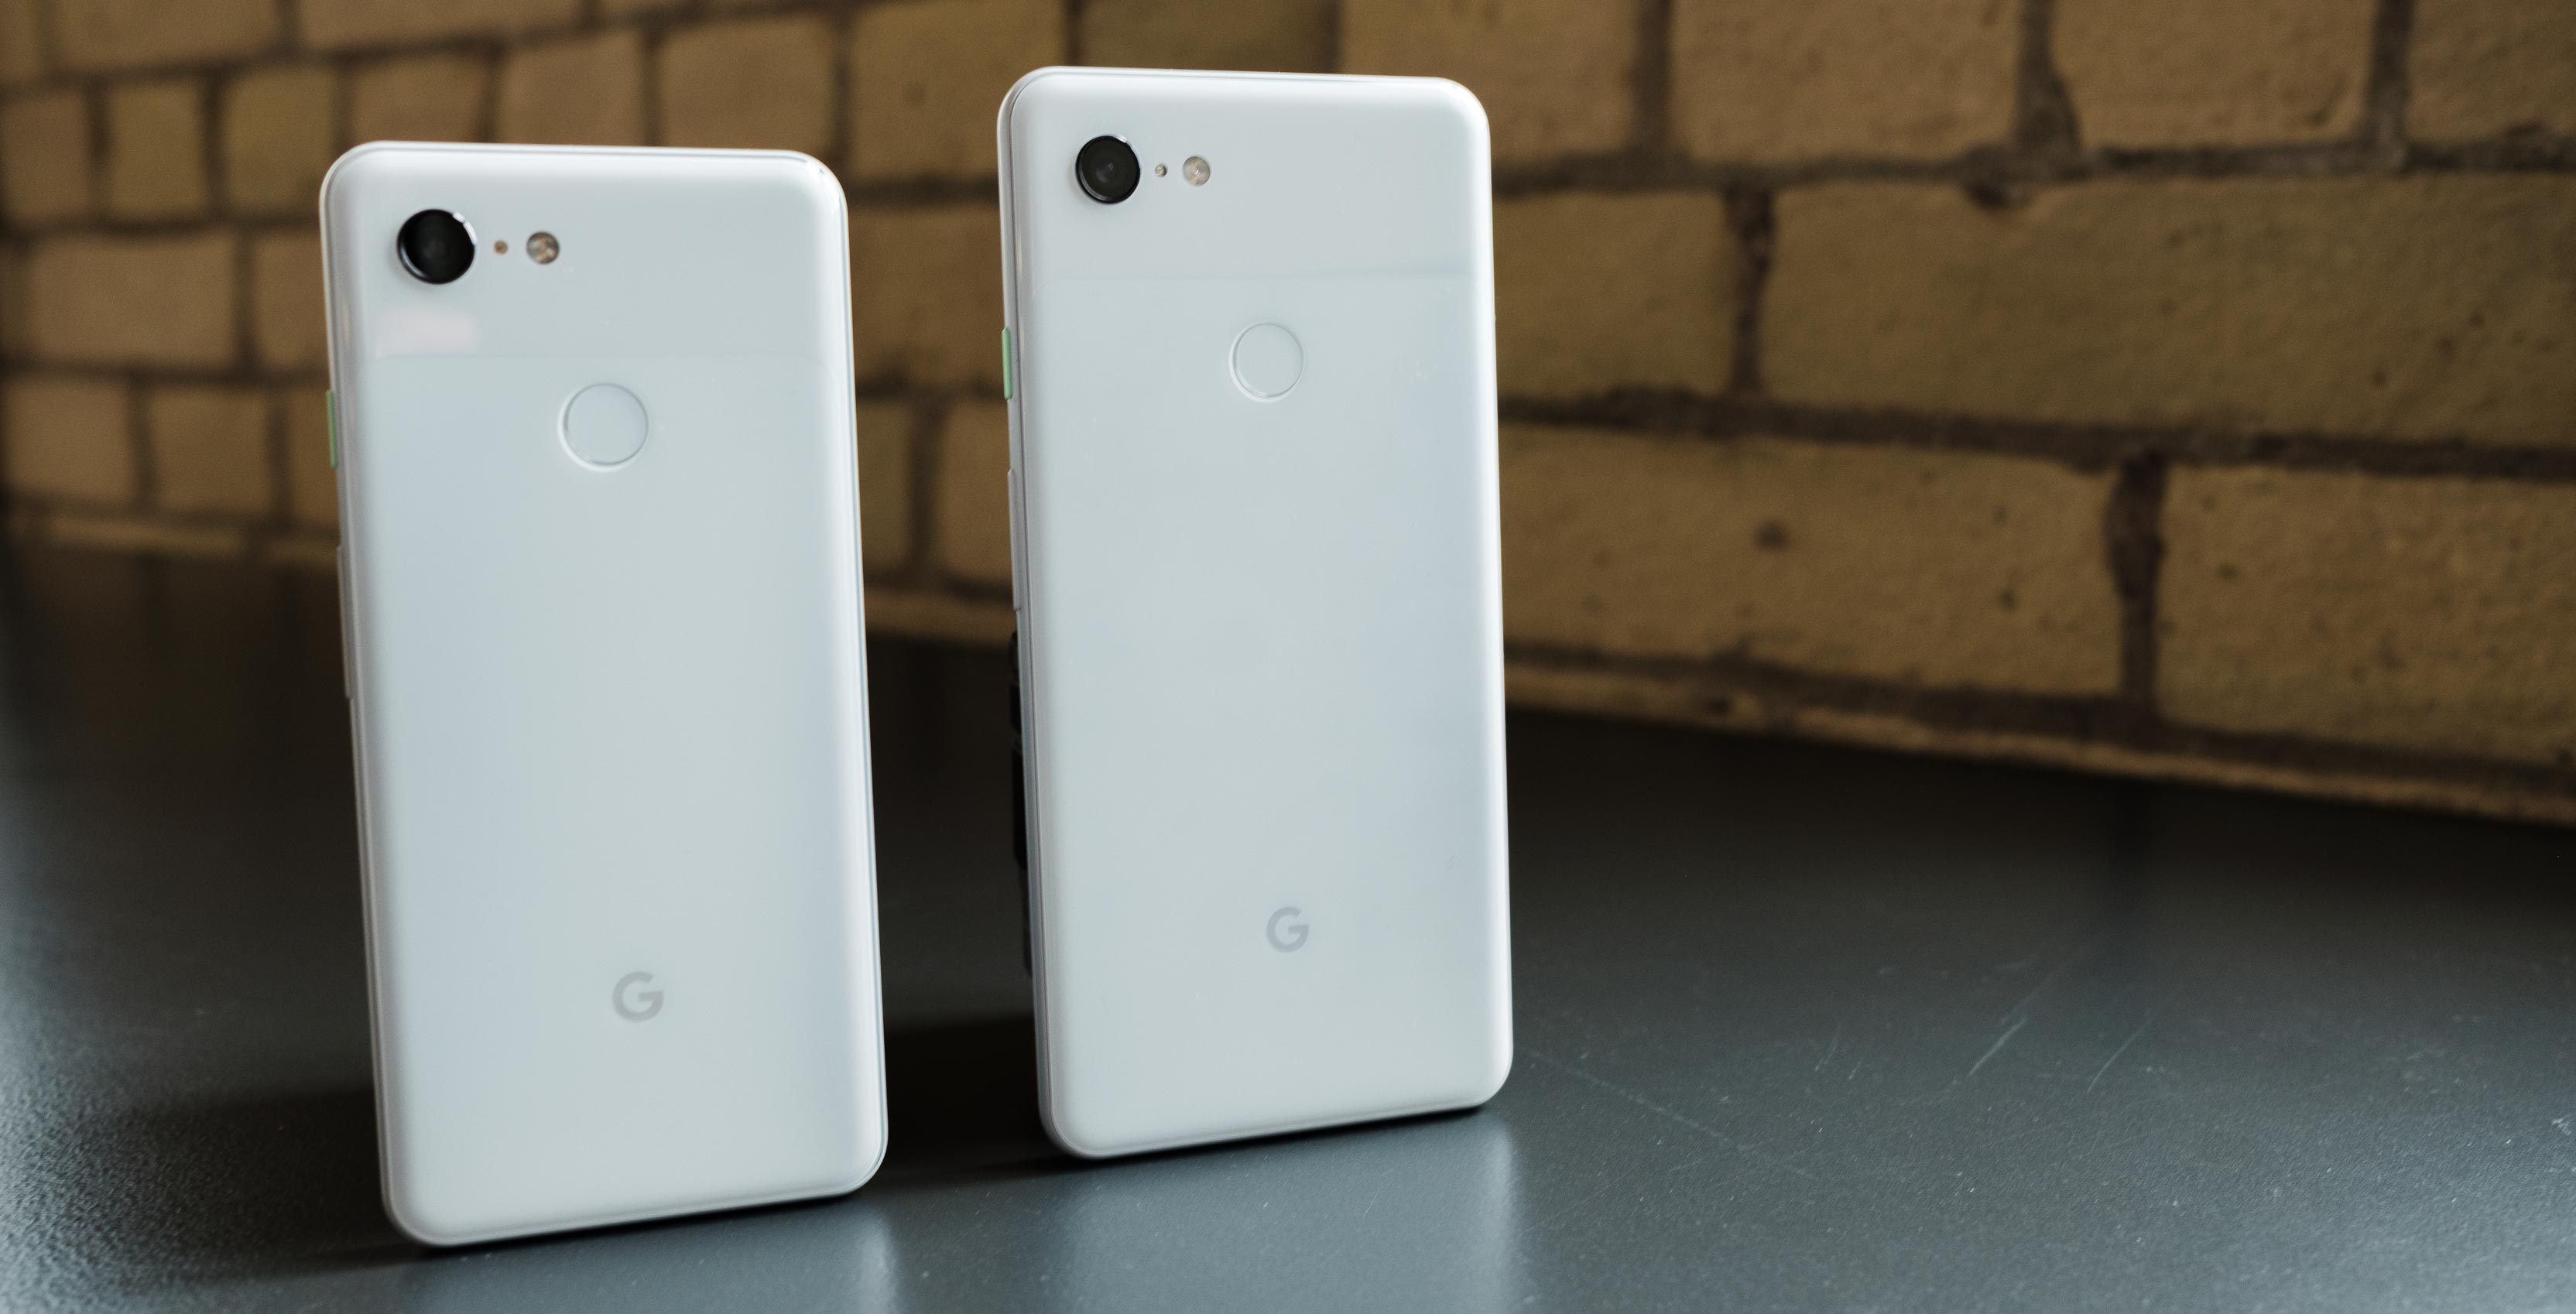 Google Pixel 3 and 3XL on table